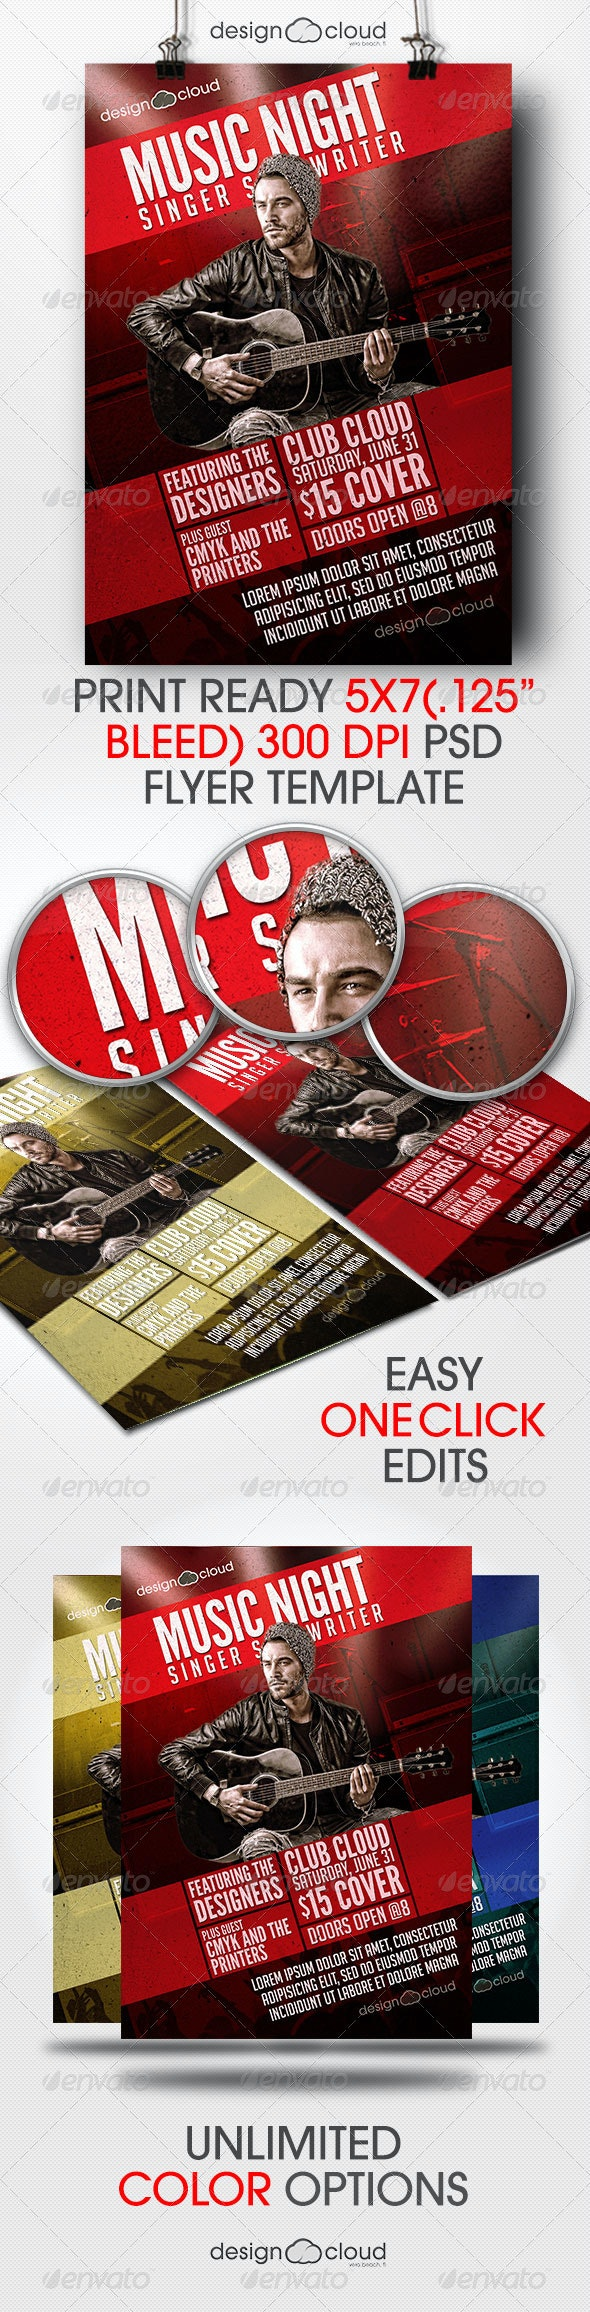 Singer, Songwriter Music Night Flyer Template - Concerts Events